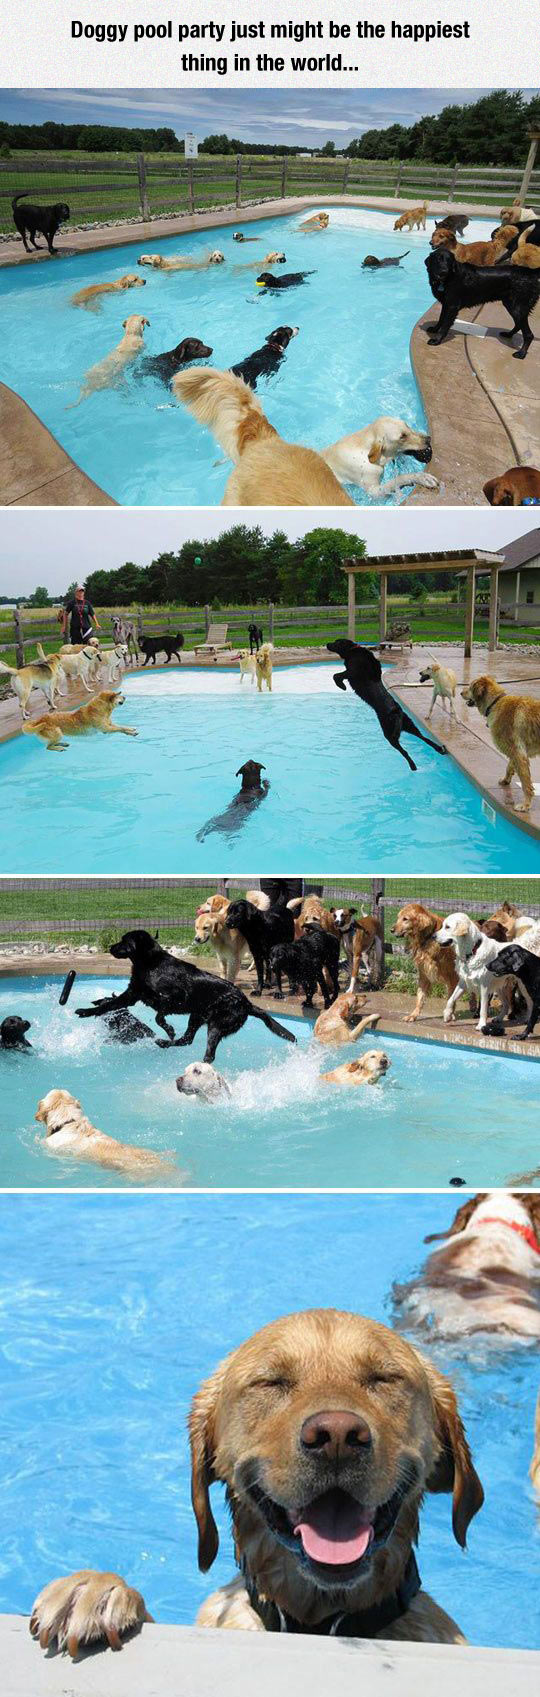 cool-dog-pool-party-jump-water